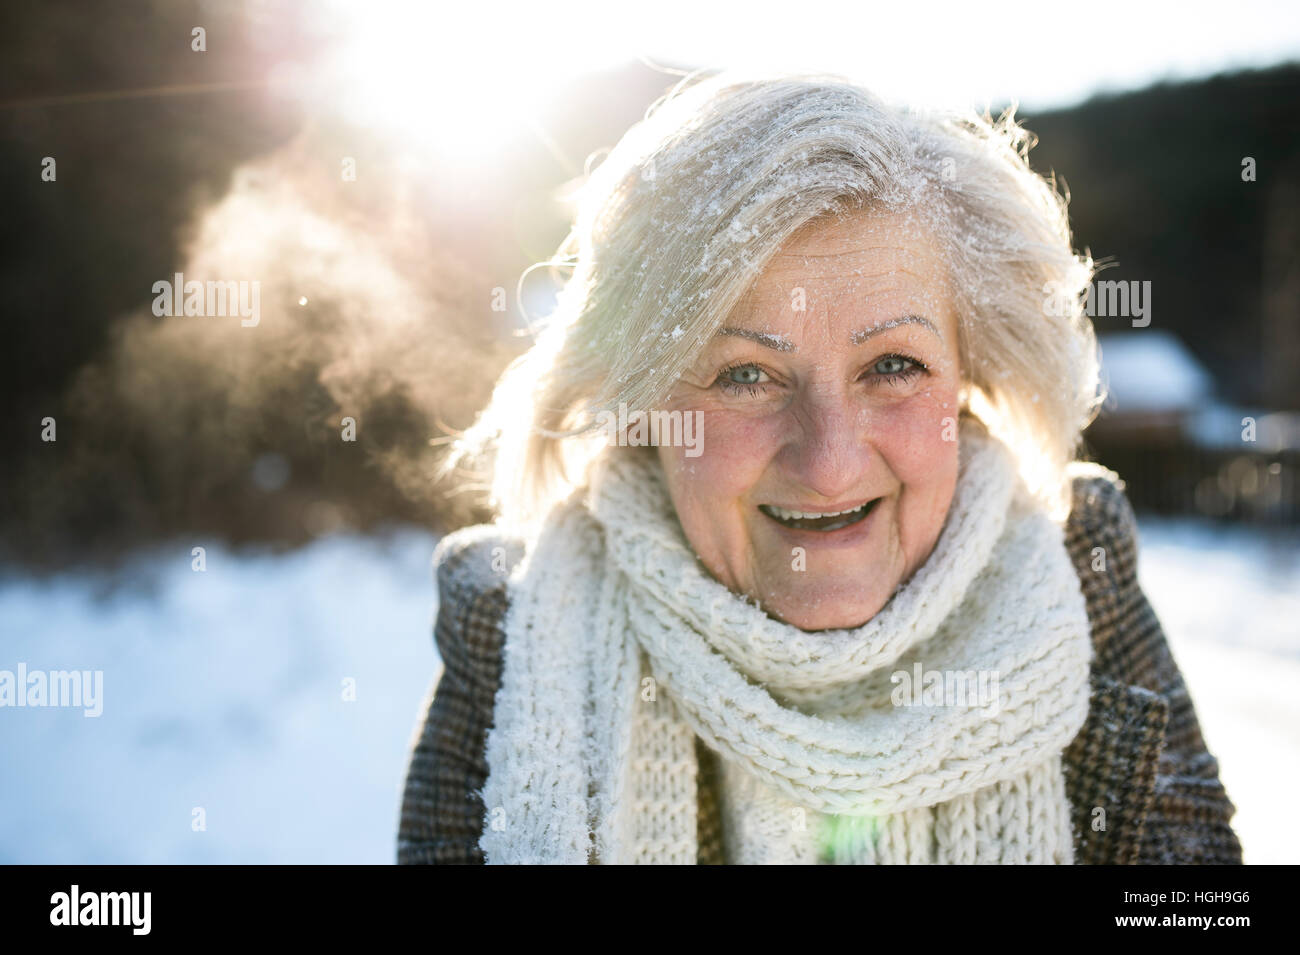 Beautiful senior woman on a walk, covered by snow - Stock Image